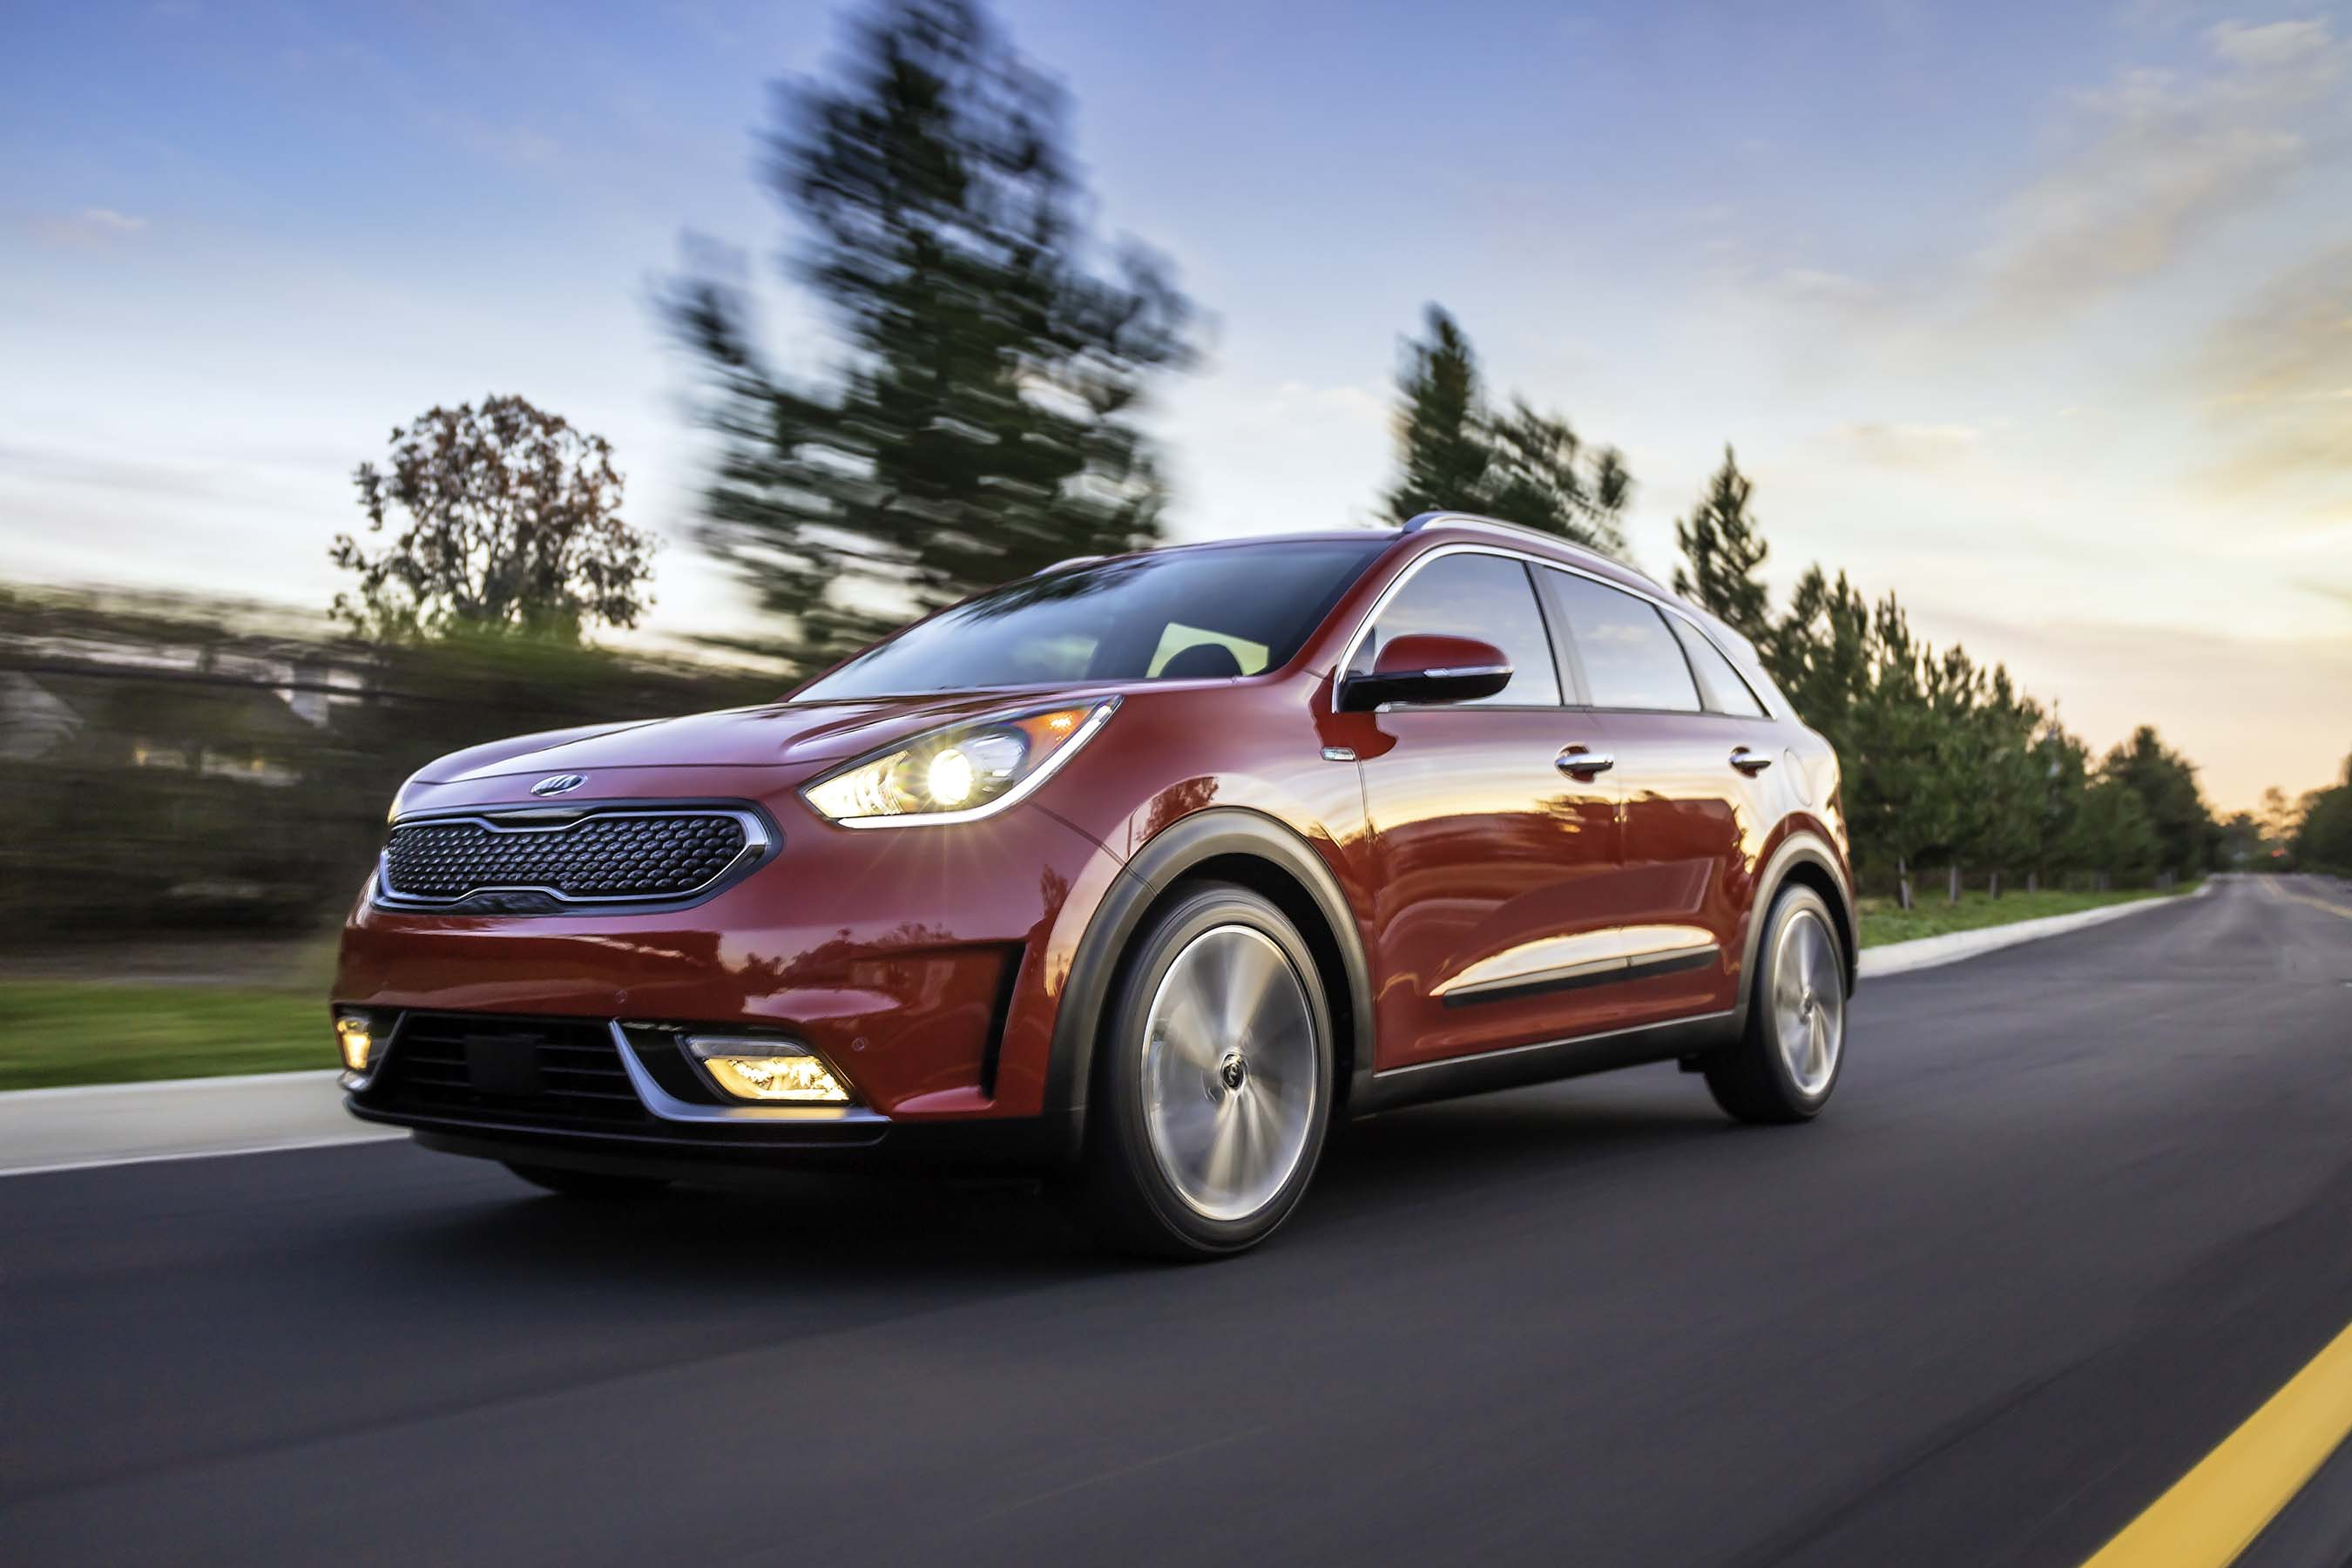 All-New 2017 Niro Hybrid Utility Vehicle Arrives in the ...